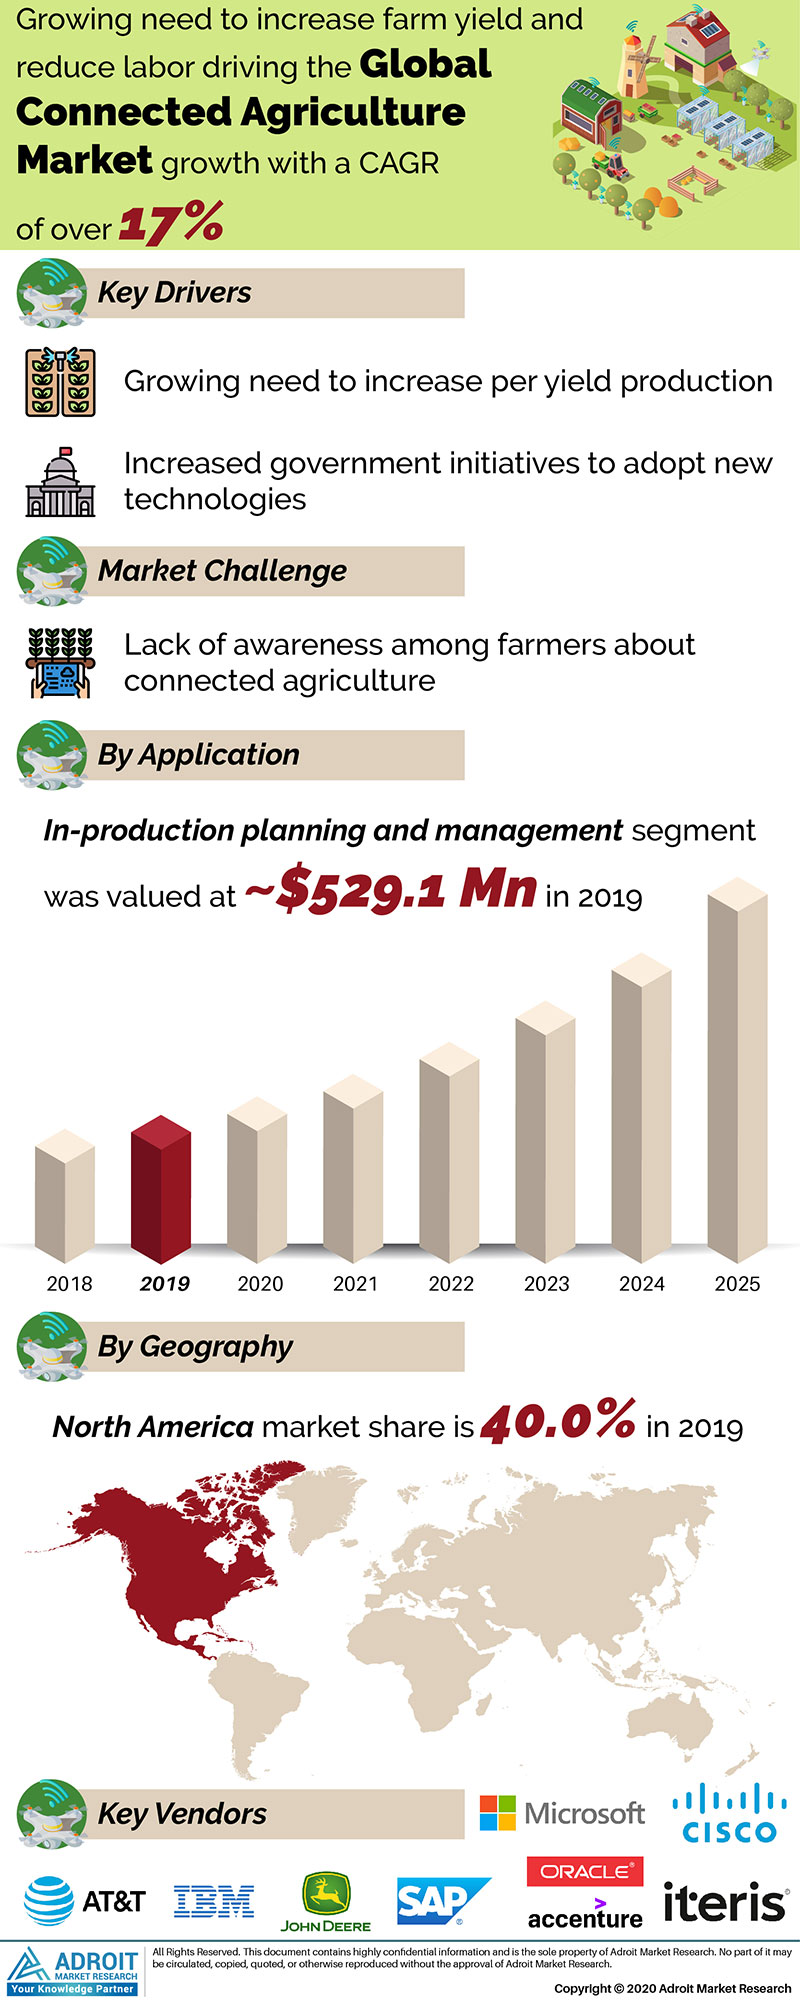 Connected Agriculture Market Size 2017 By Application, Product, Region and Forecast 2019 to 2025